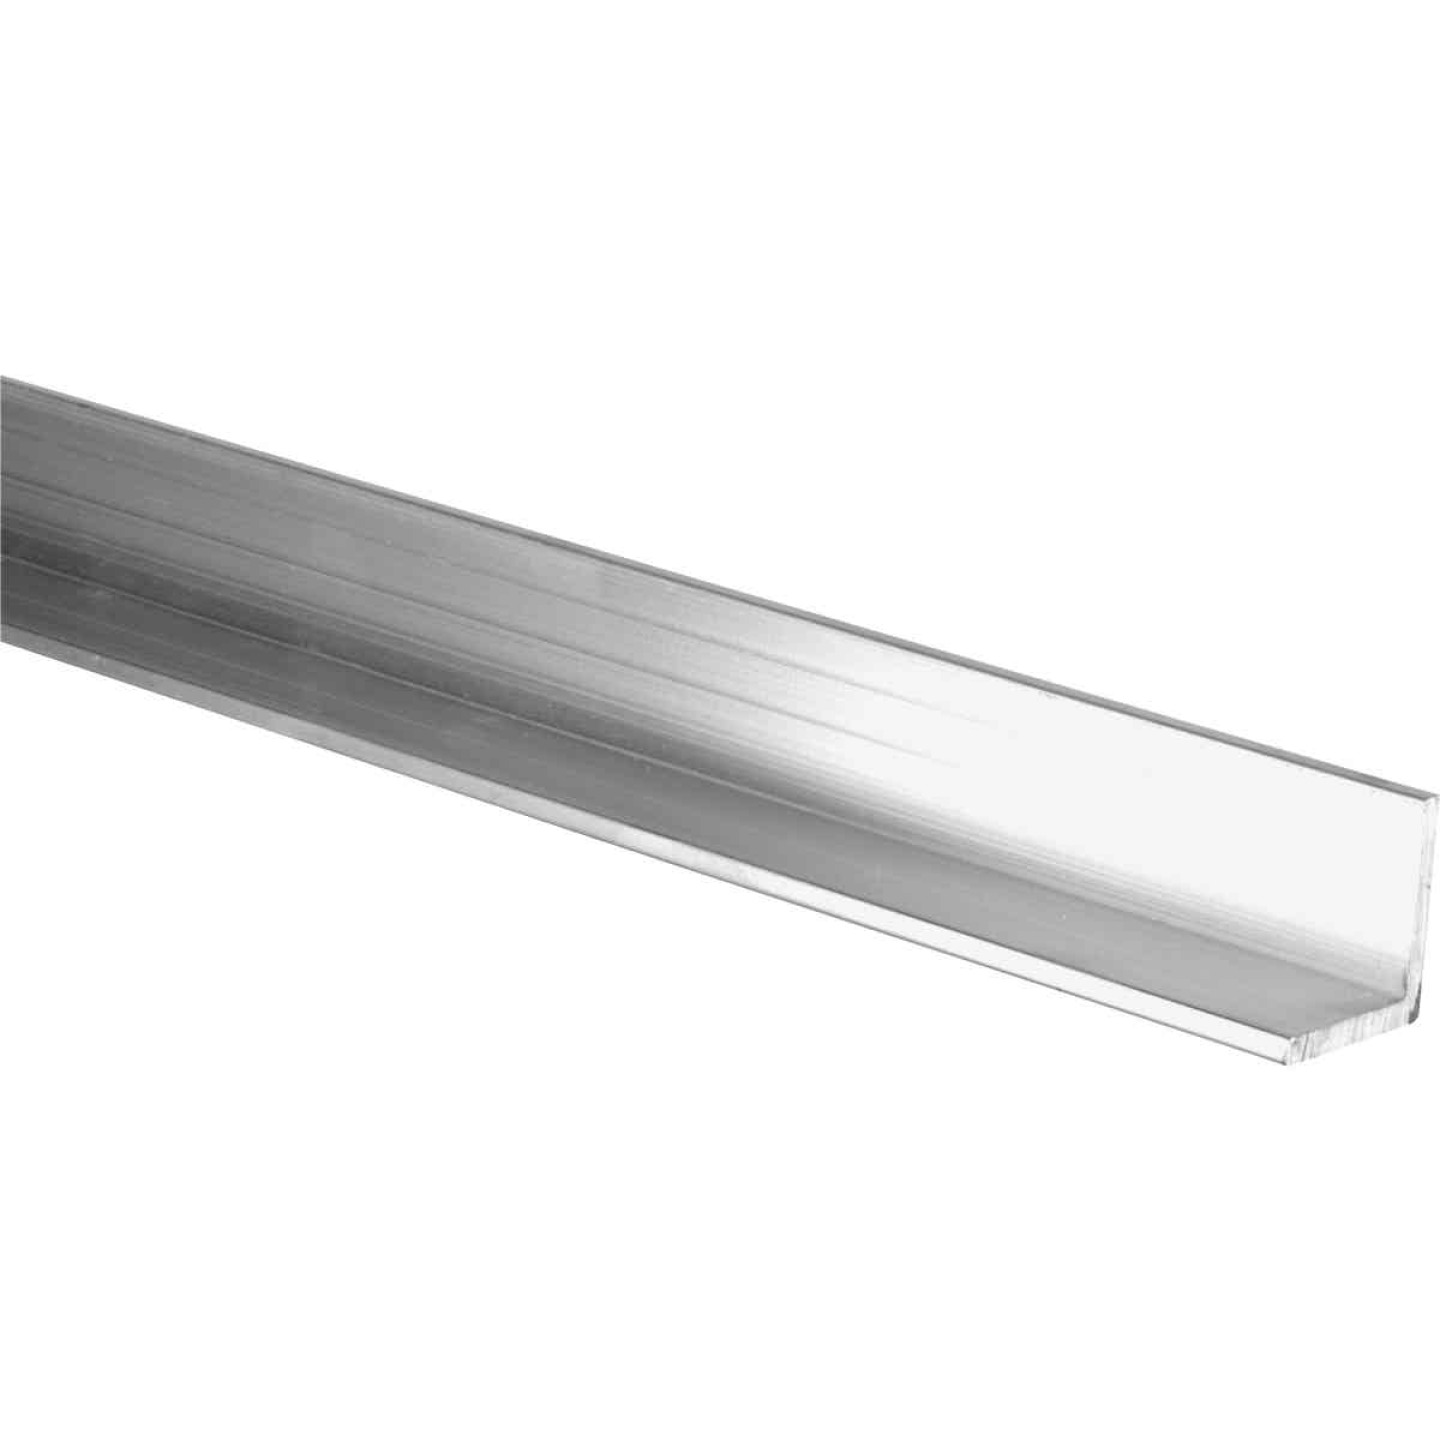 HILLMAN Steelworks Mill 2 In. x 3 Ft., 1/8 In. Aluminum Solid Angle Image 1